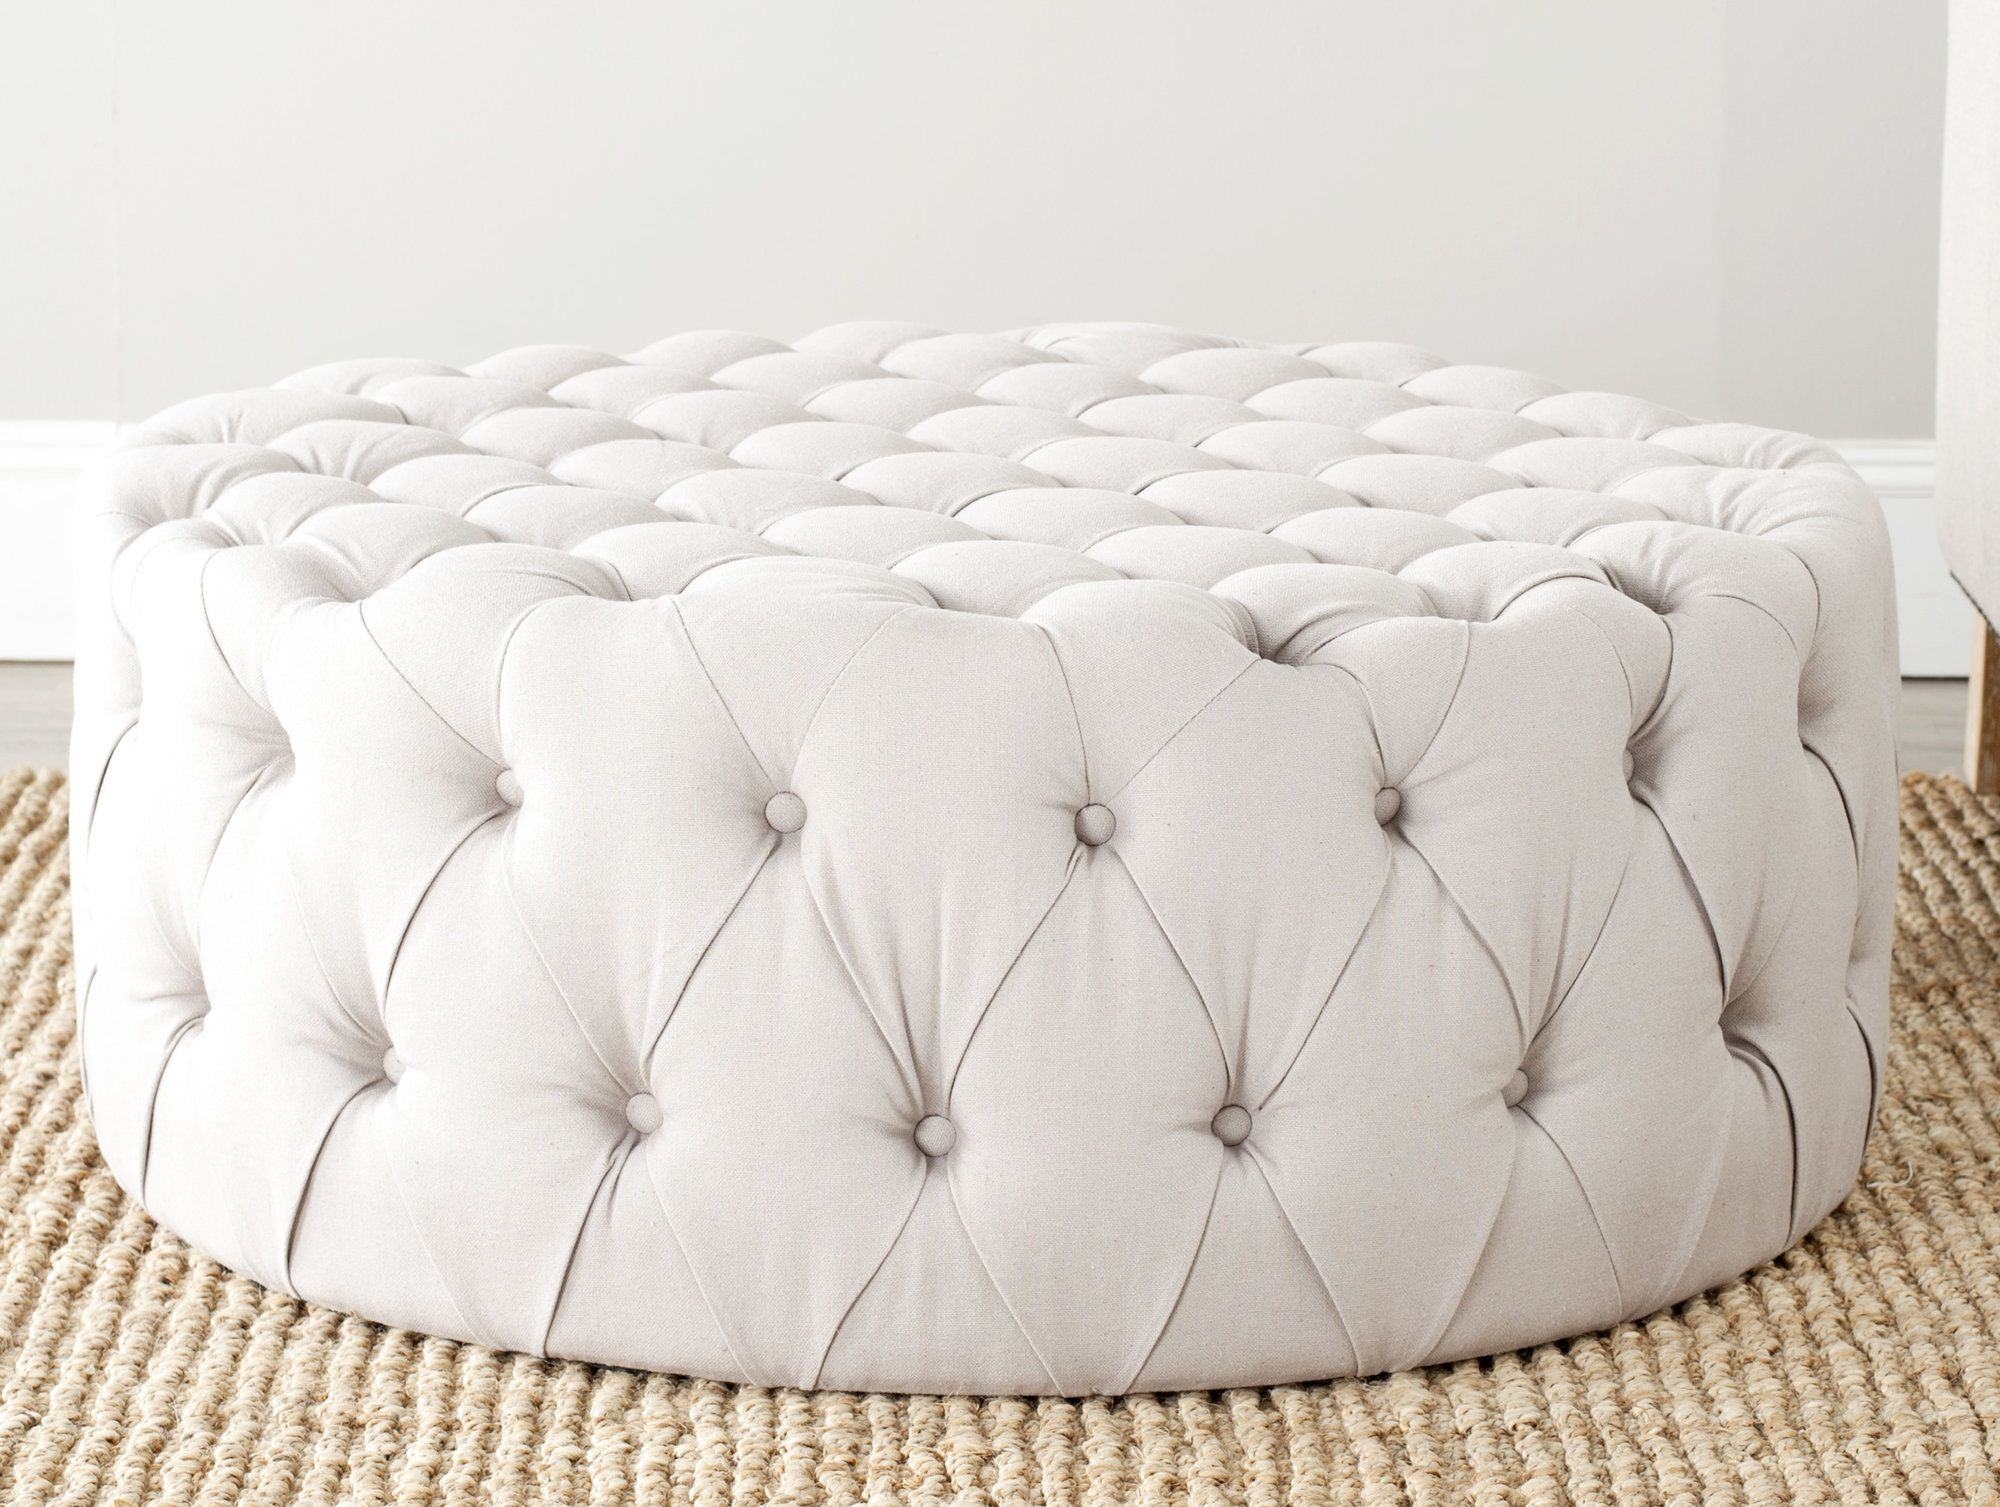 Abrielle 39 4 Tufted Round Cocktail Ottoman Leather Ottoman Coffee Table Tufted Ottoman Coffee Table Tufted Ottoman